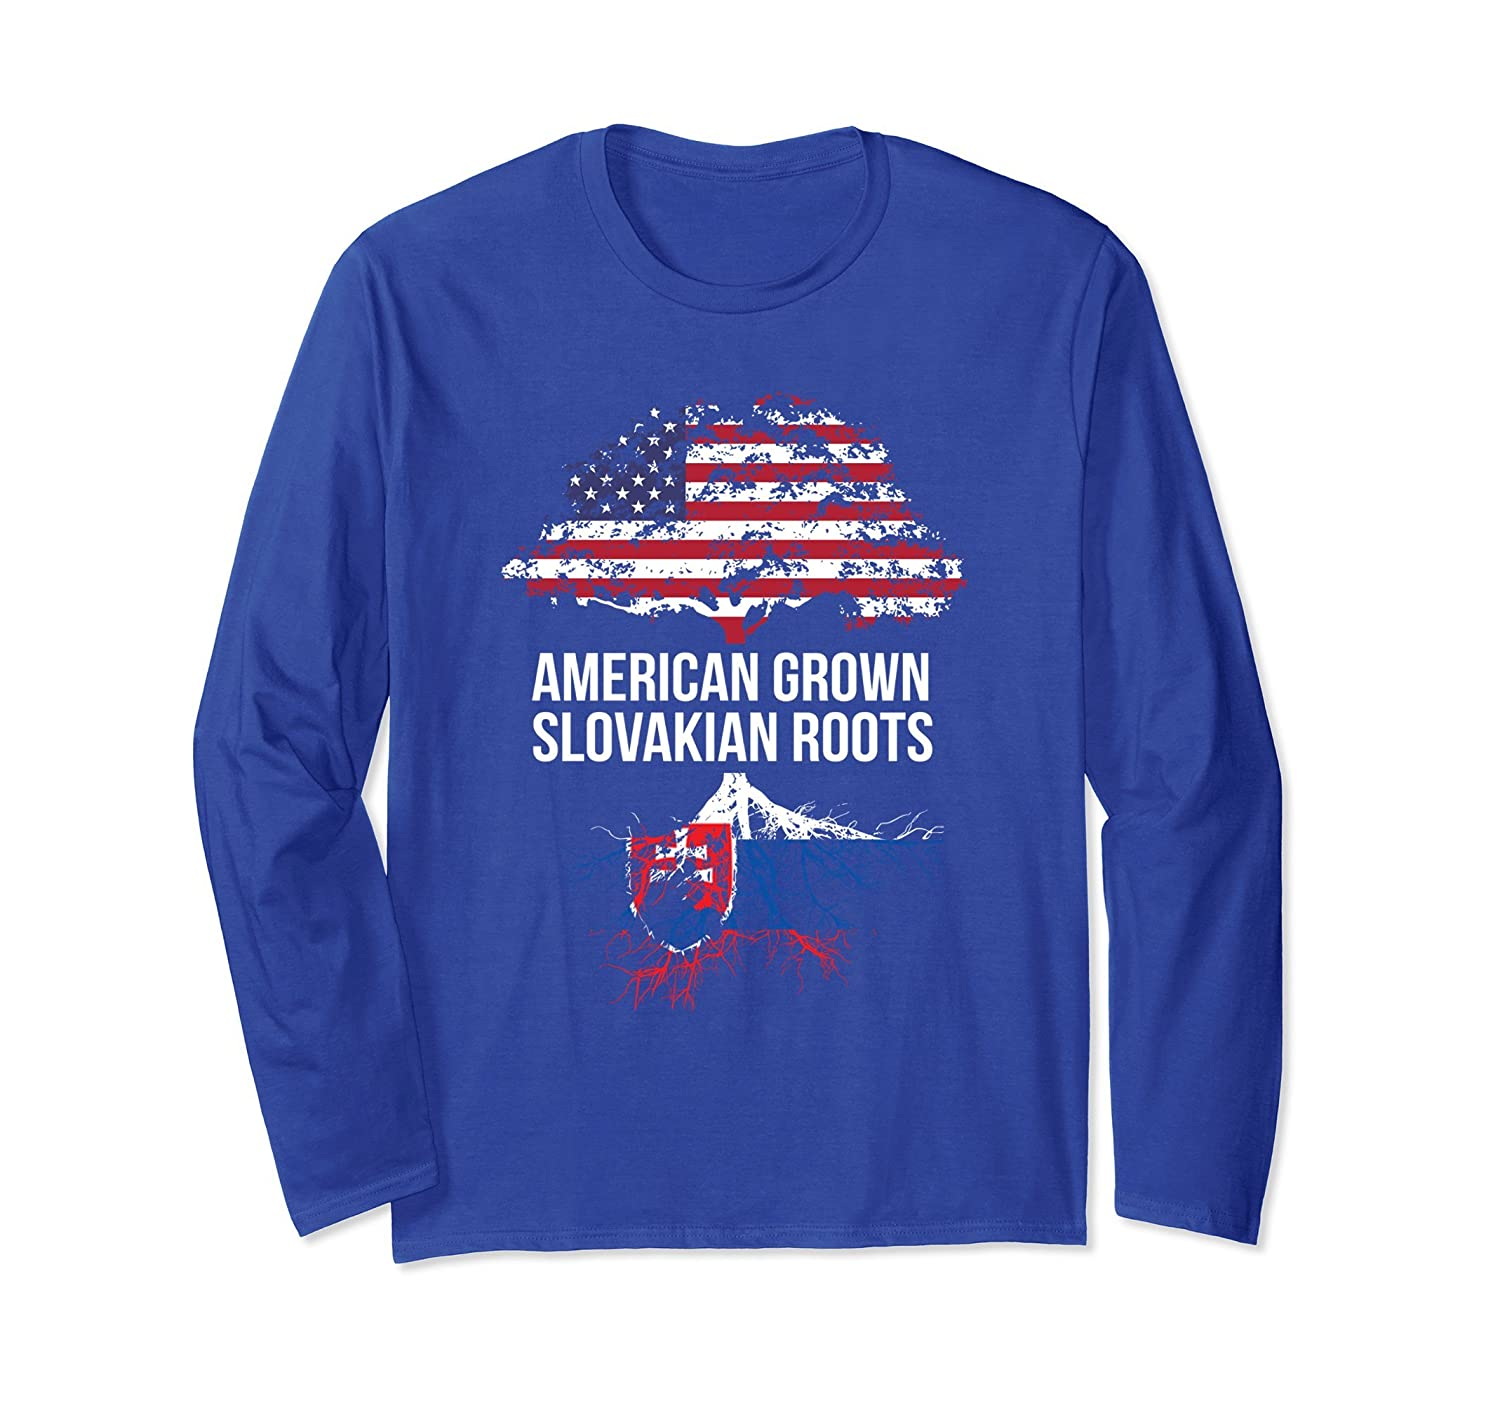 American Grown with Slovakian Roots Long Shirt - Slovakia-ah my shirt one gift